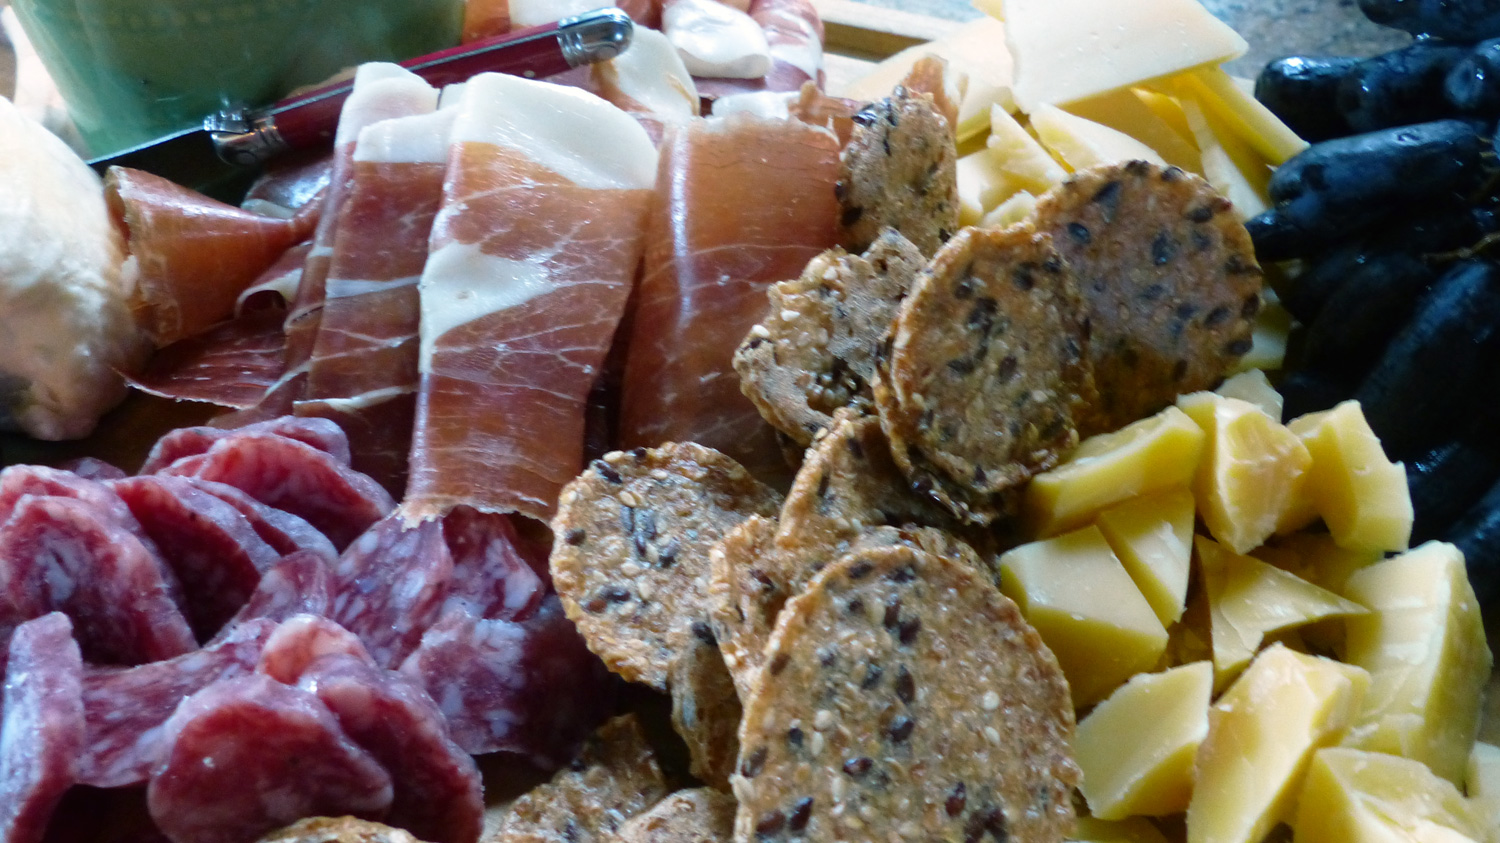 Charcuterie & Cheese Platter, chock full of  Serrano ham, chorizo, Mahon Curado  cheese, grapes,  Marie's Gone Crackers